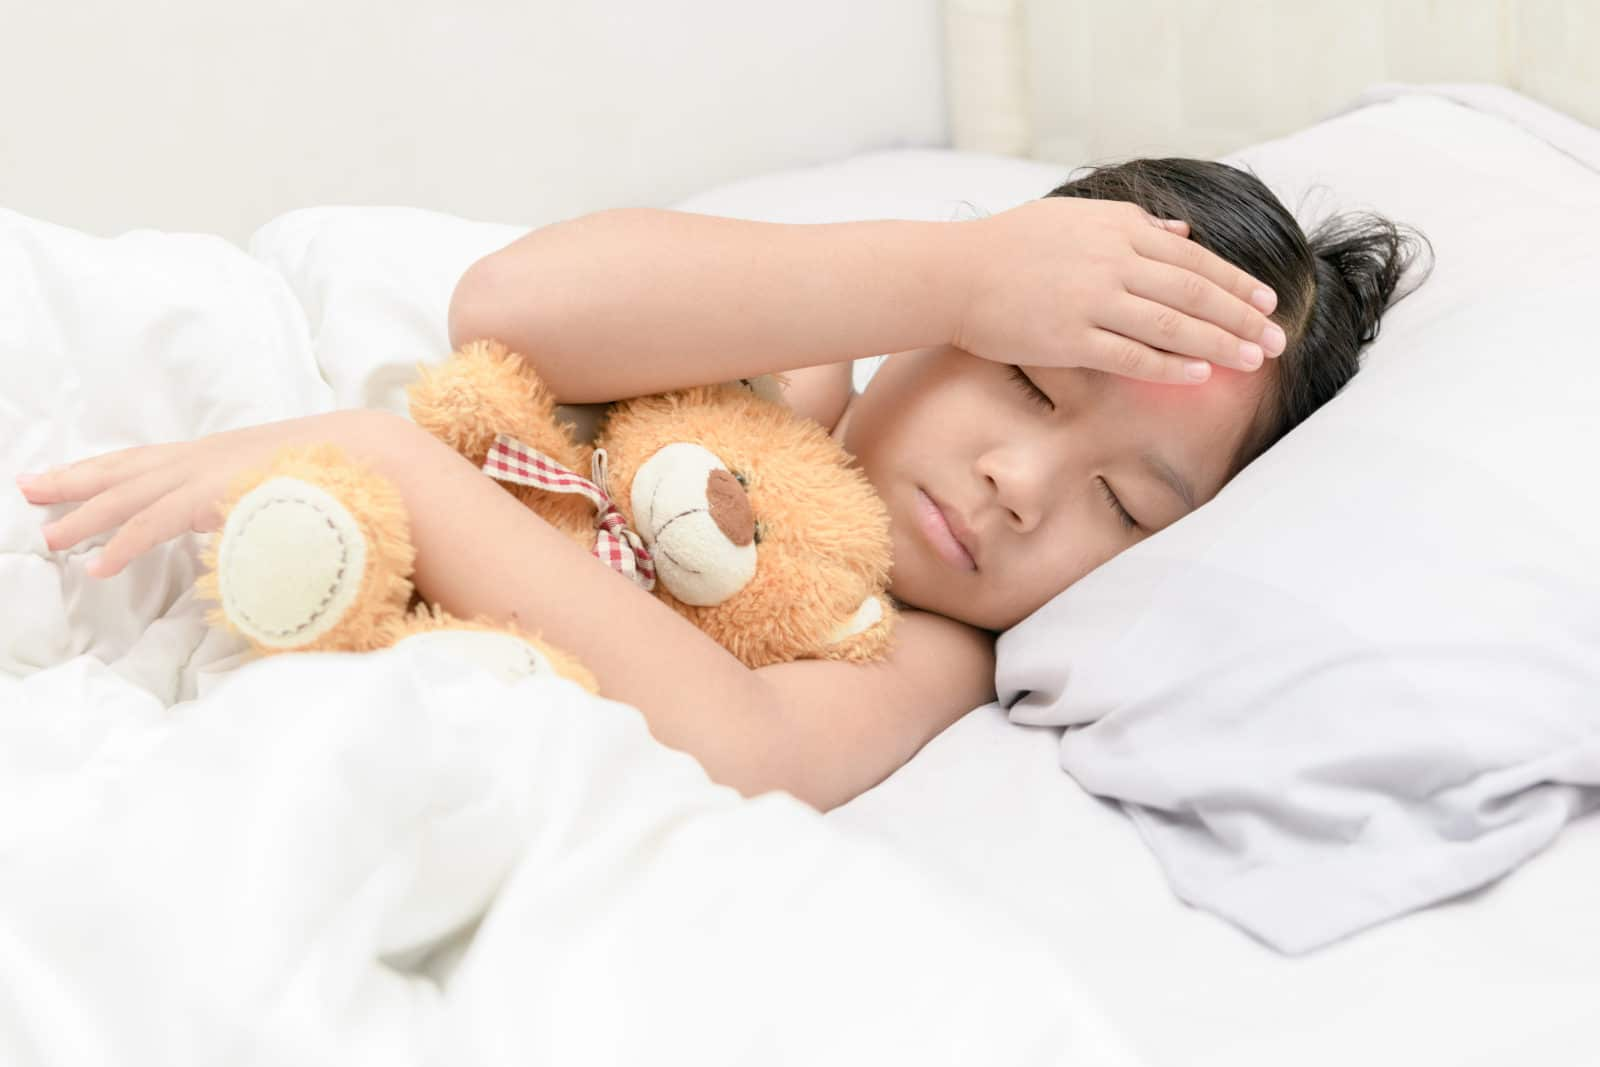 how to treat pediatric migraines, How to Treat Pediatric Migraines: What Parents Should Know